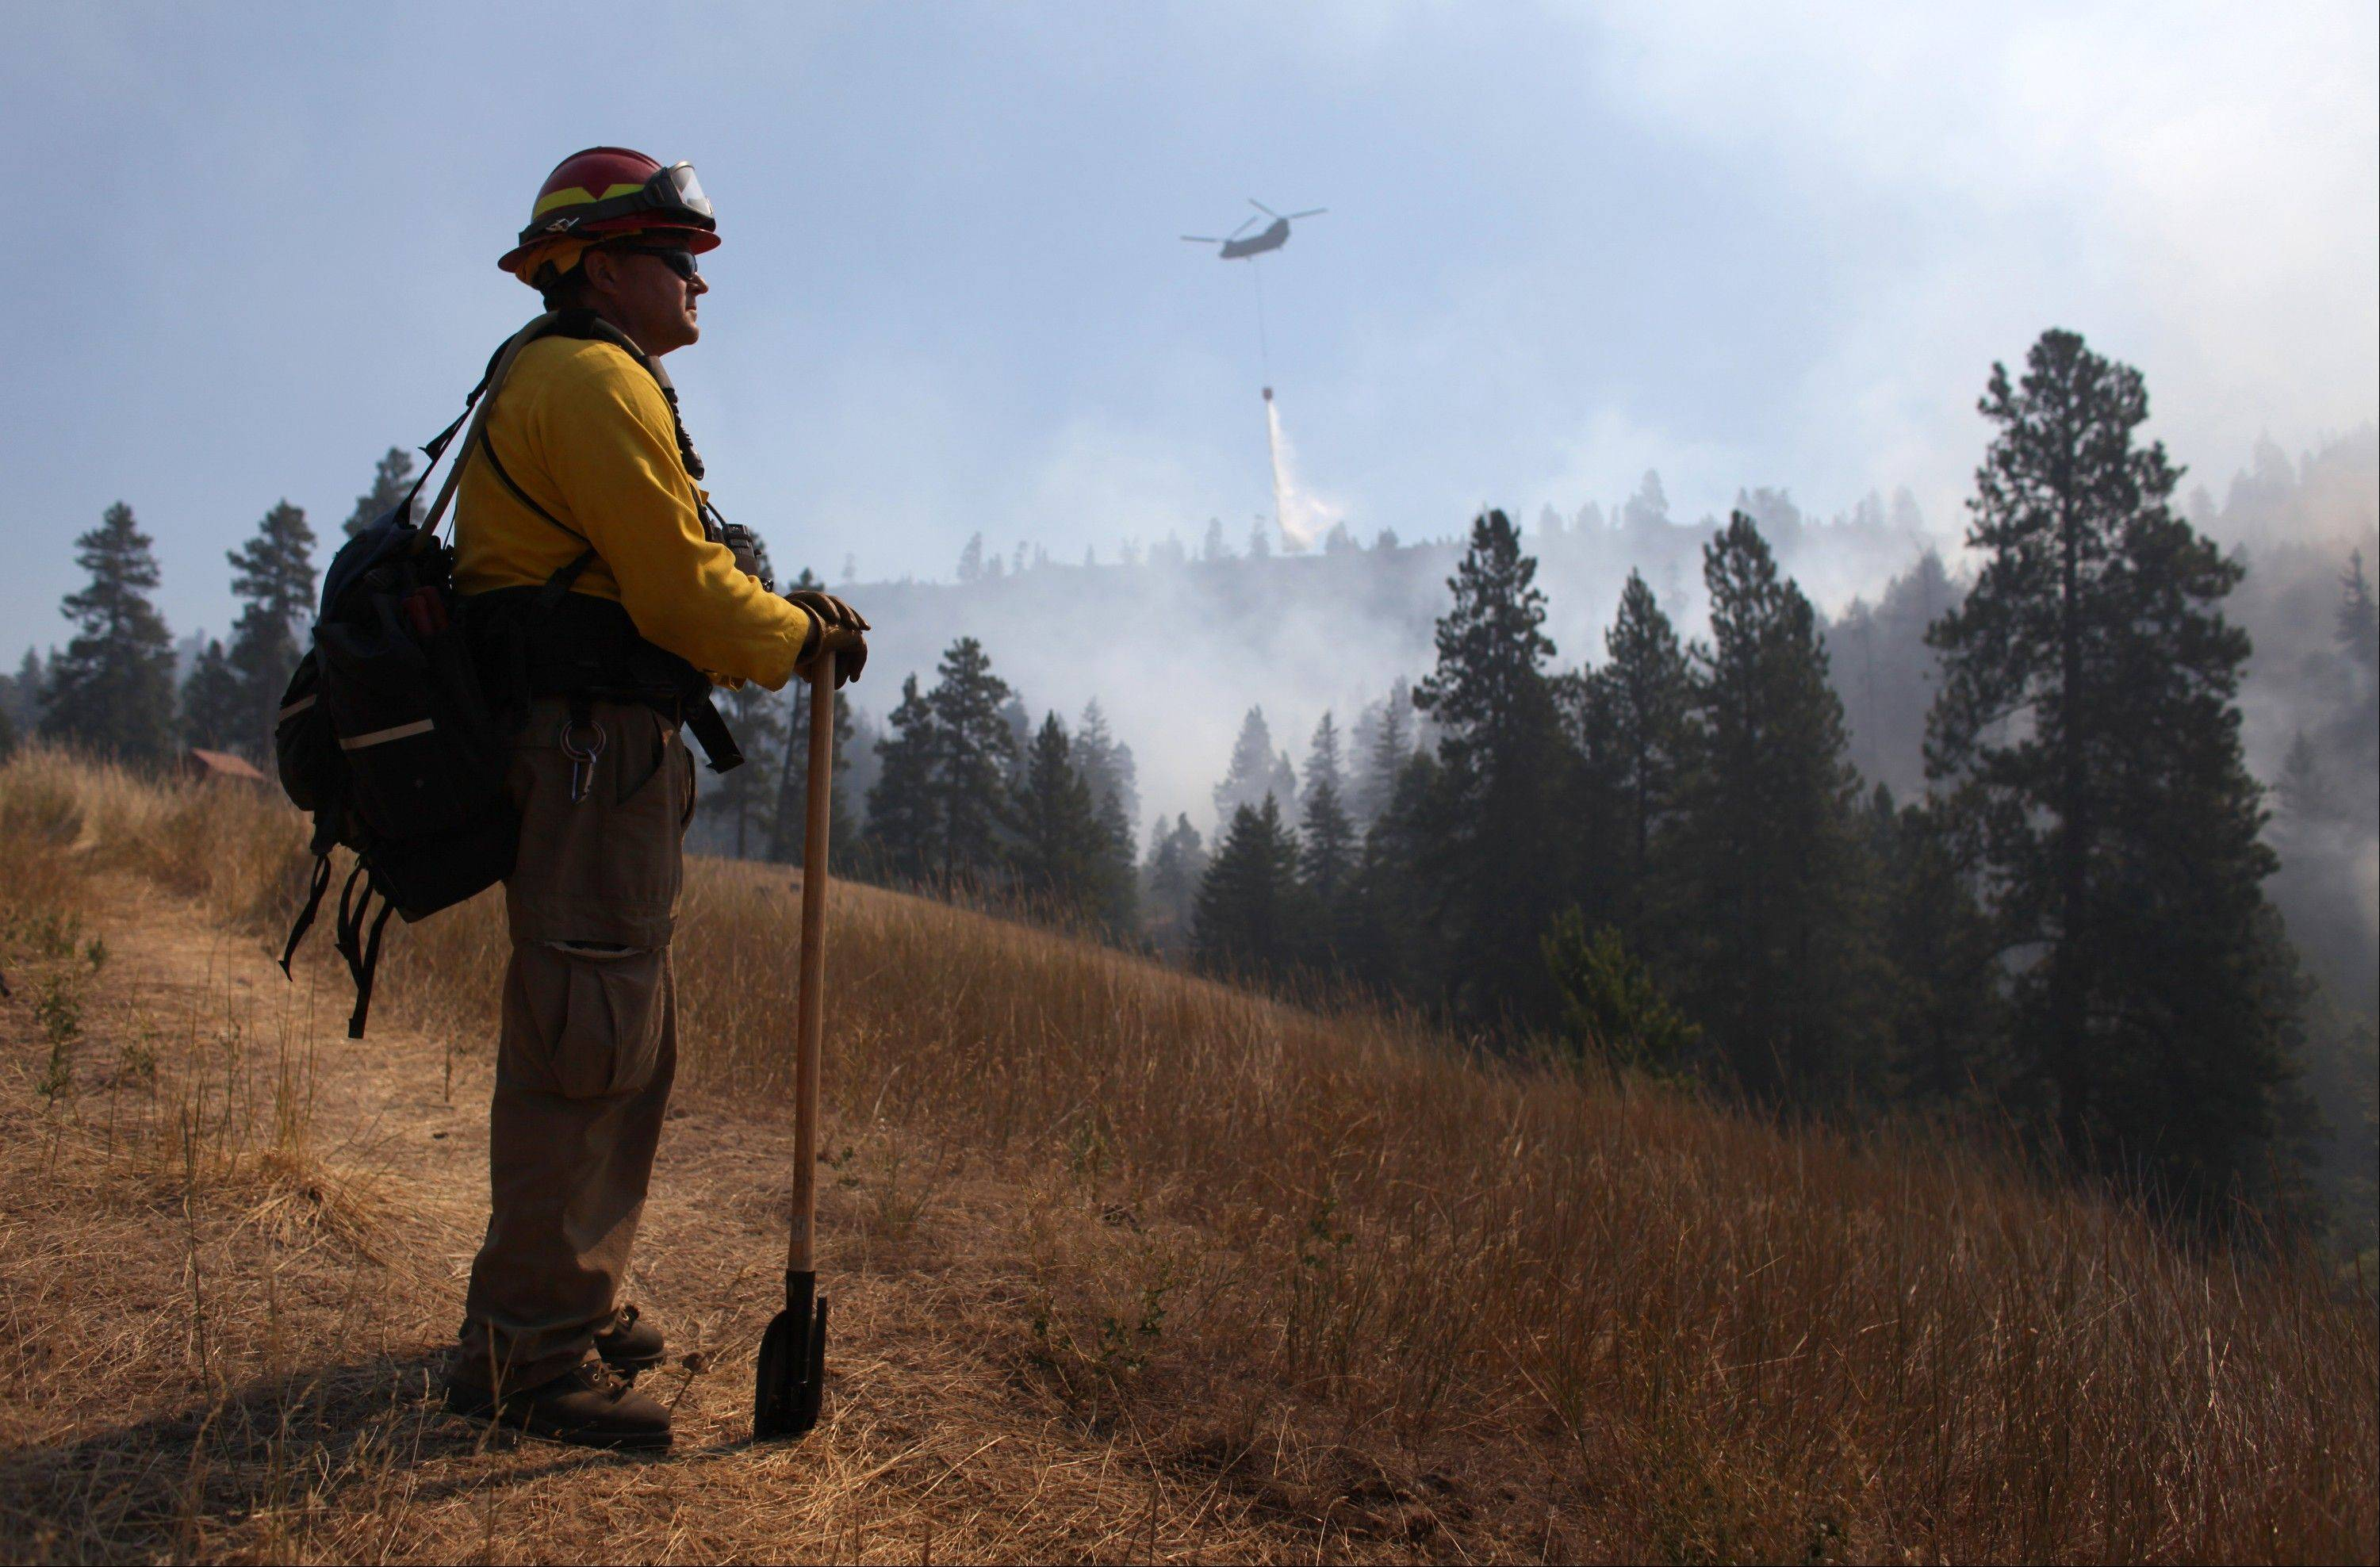 Tracy Summers of Toledo, Wash. monitors the scene above Hidden Valley Ranch where fire crews worked to halt progression of the Taylor Bridge Fire on Thursday, August 16, 2012 near Cle Elum, Wash. The Taylor Bridge Fire has forced hundreds to evacuate and has burned dozens of homes near Cle Elum, Wash.